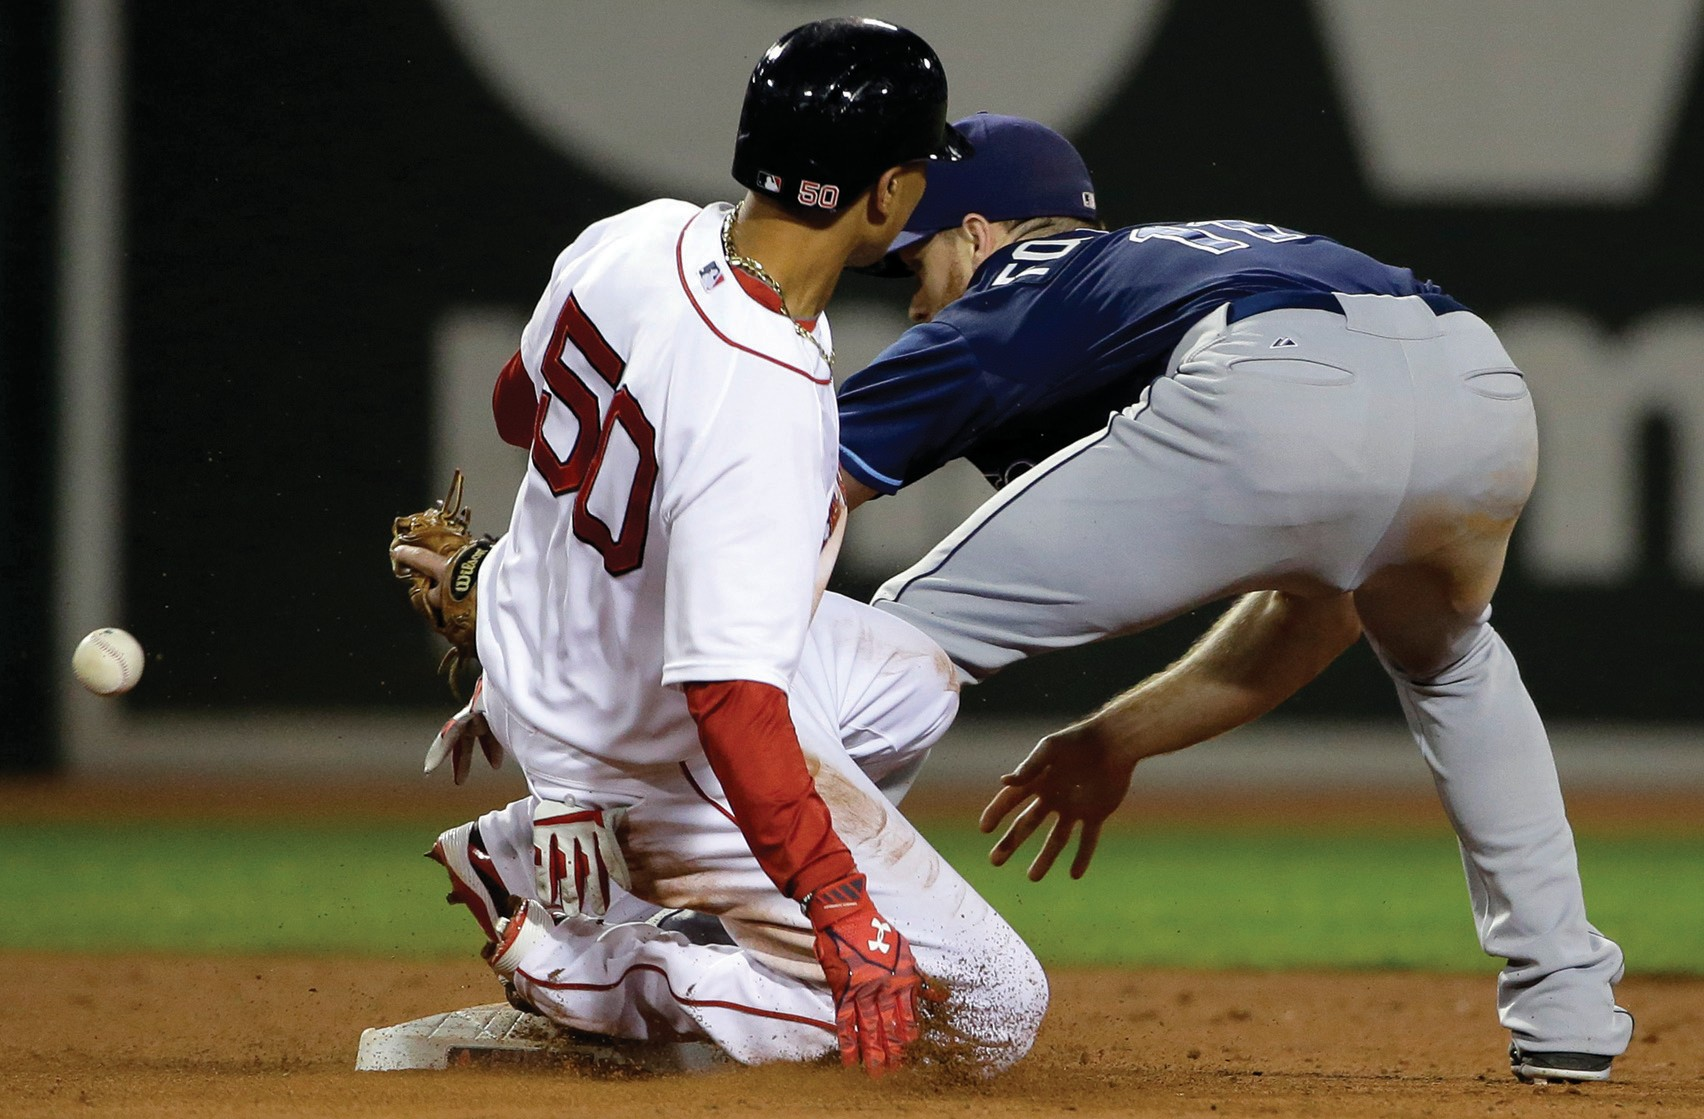 Boston Red Sox's Mookie Betts, left, slides safe at second base as Tampa Bay Rays' Logan Forsythe, right, is unable to handle the ball in the seventh inning on Monday at Fenway Park in Boston.